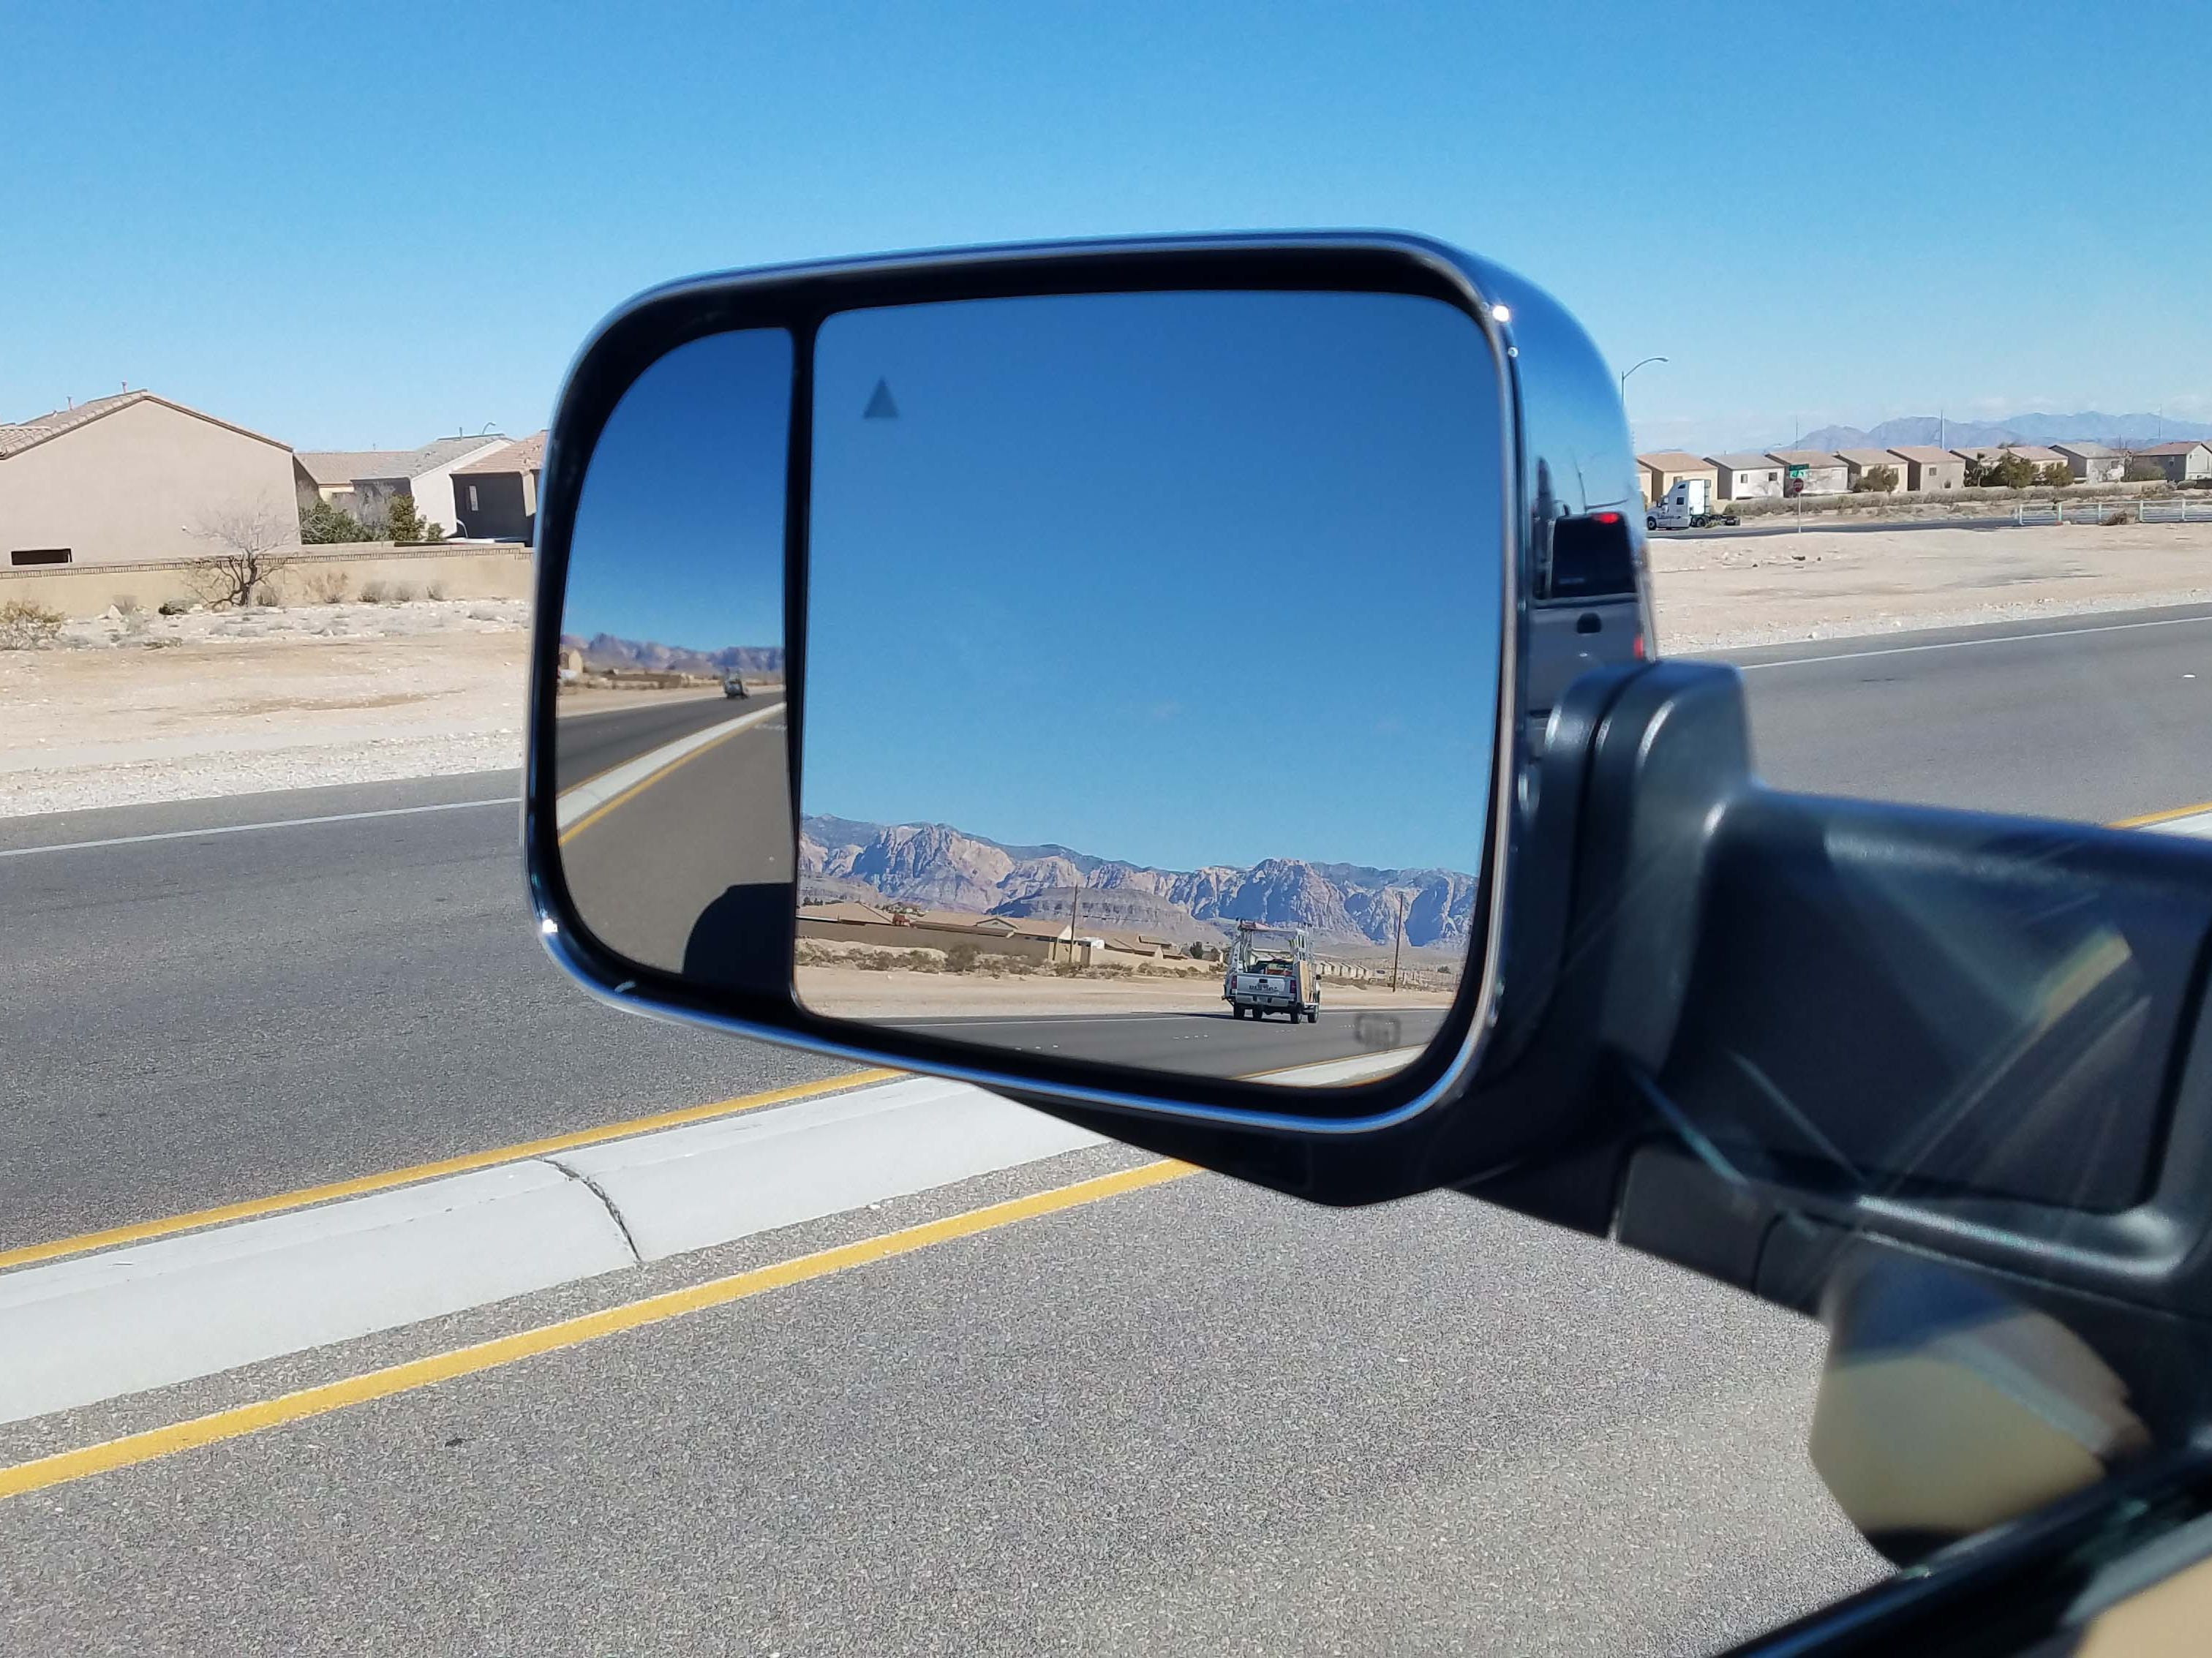 The Ram 3500 Heavy Duty boasts a versatile side mirror, with both panes controllable from inside the cab.